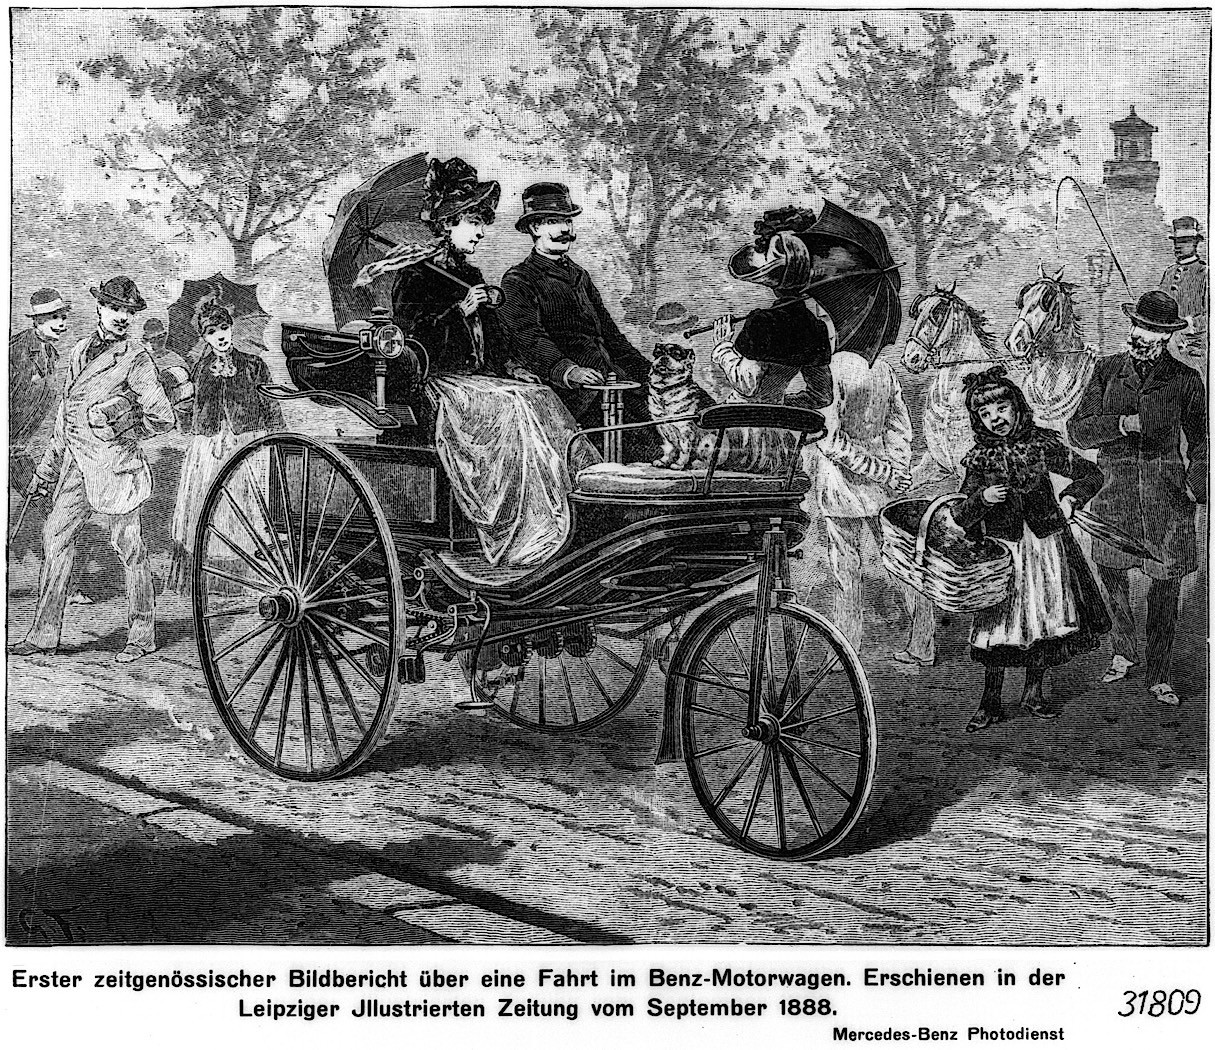 The World S First Automobile The Benz Patent Motorwagen: Bertha Benz Gets Inducted Into The Automotive Hall Of Fame